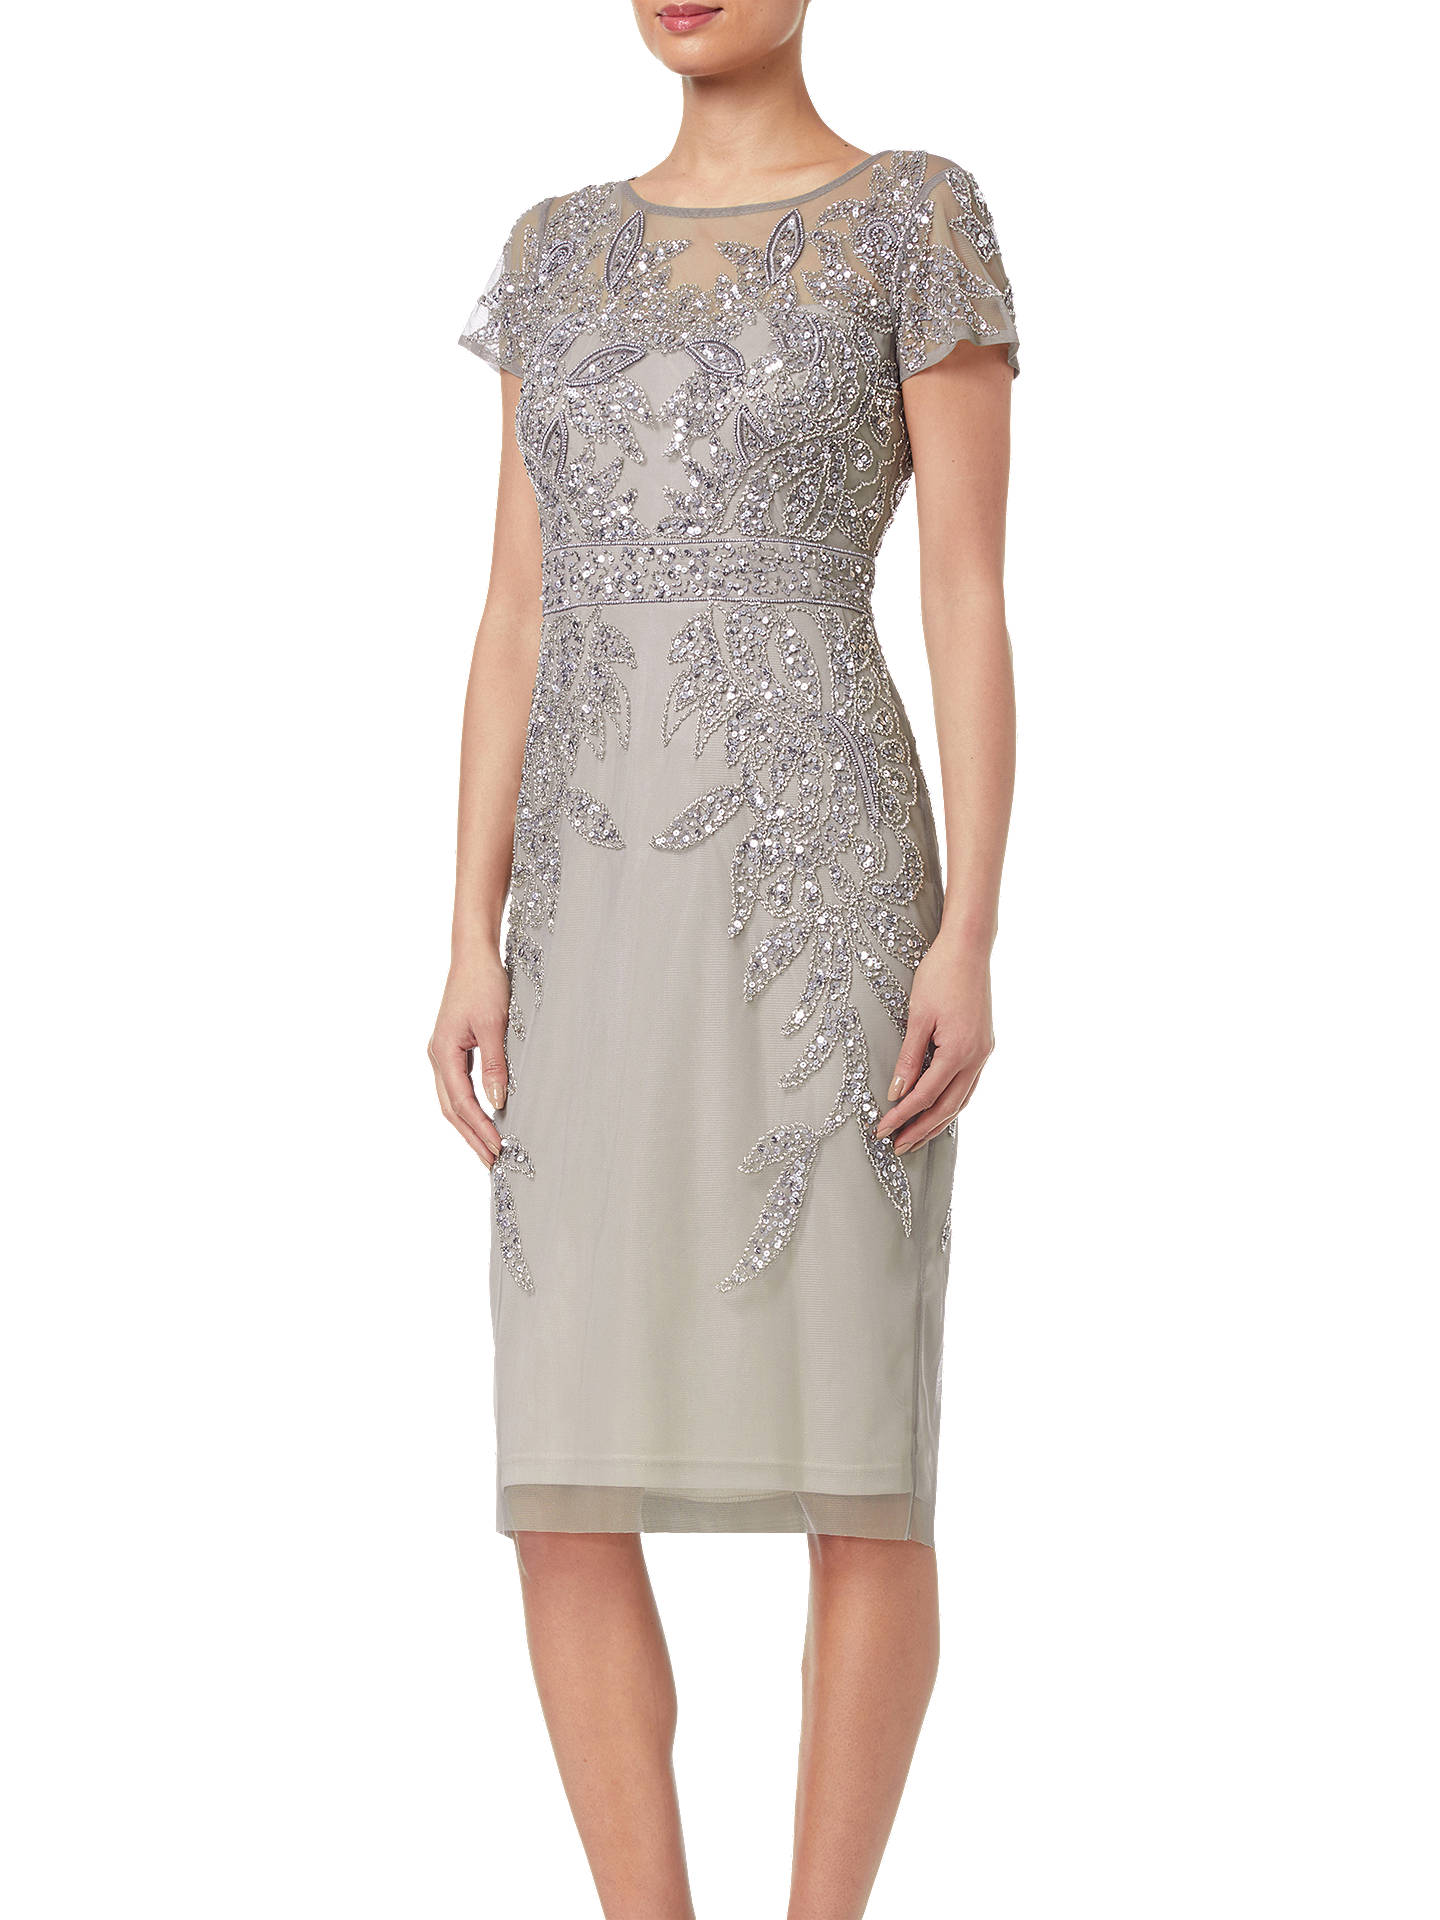 a01915574 Buy Adrianna Papell Short Sleeve Beaded Cocktail Dress, Platinum, 8 Online  at johnlewis.